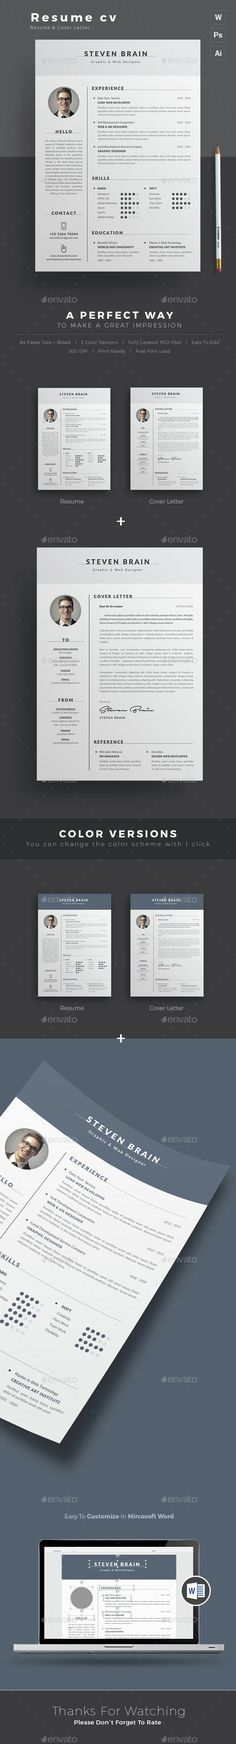 resumes photoshop psd designer letterhead download https